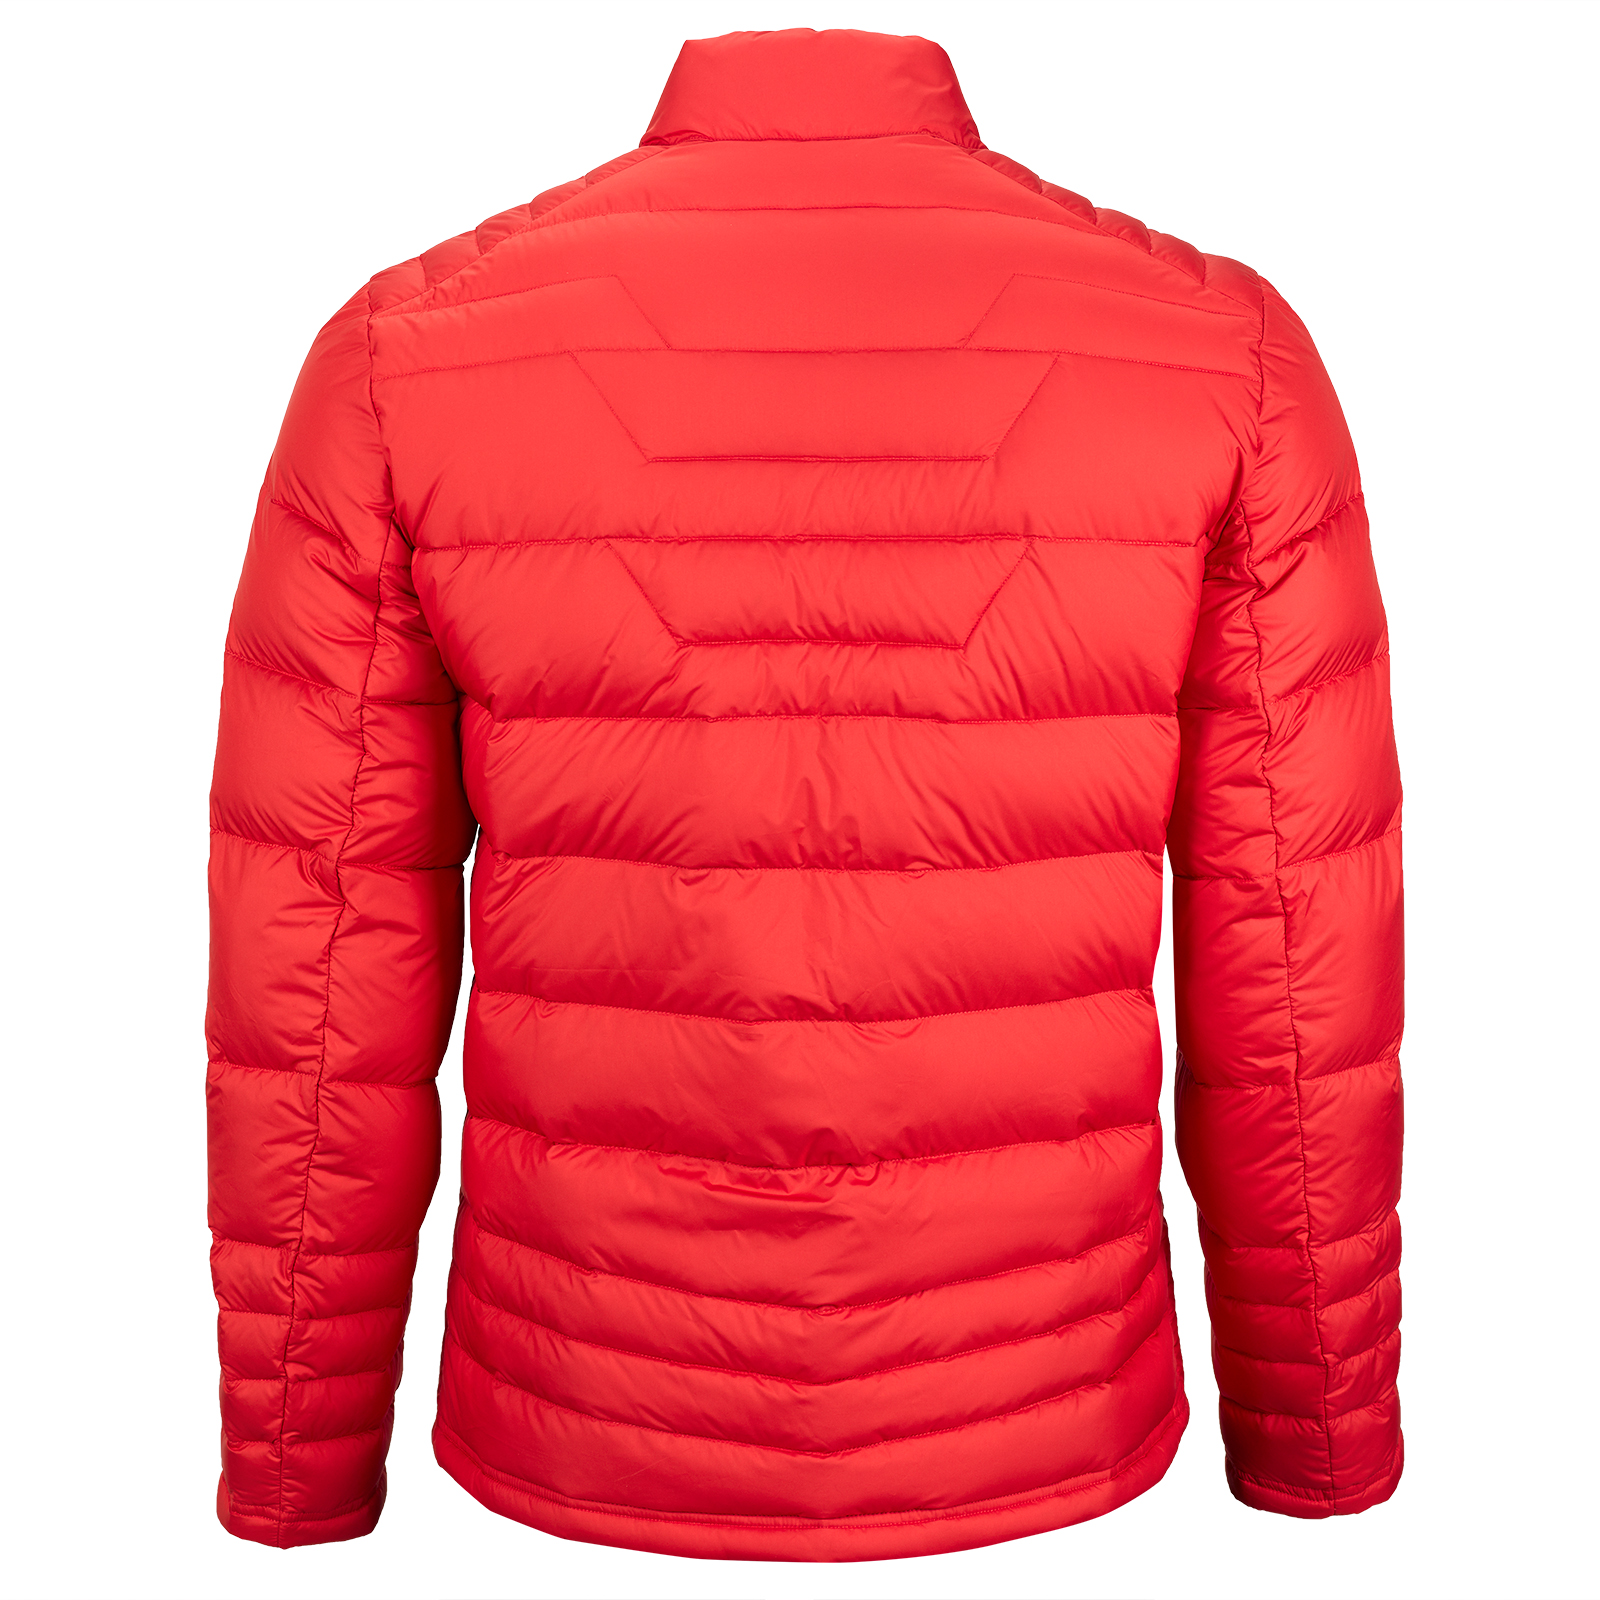 Leichte Herren Cold Protection Daunen-Steppjacke